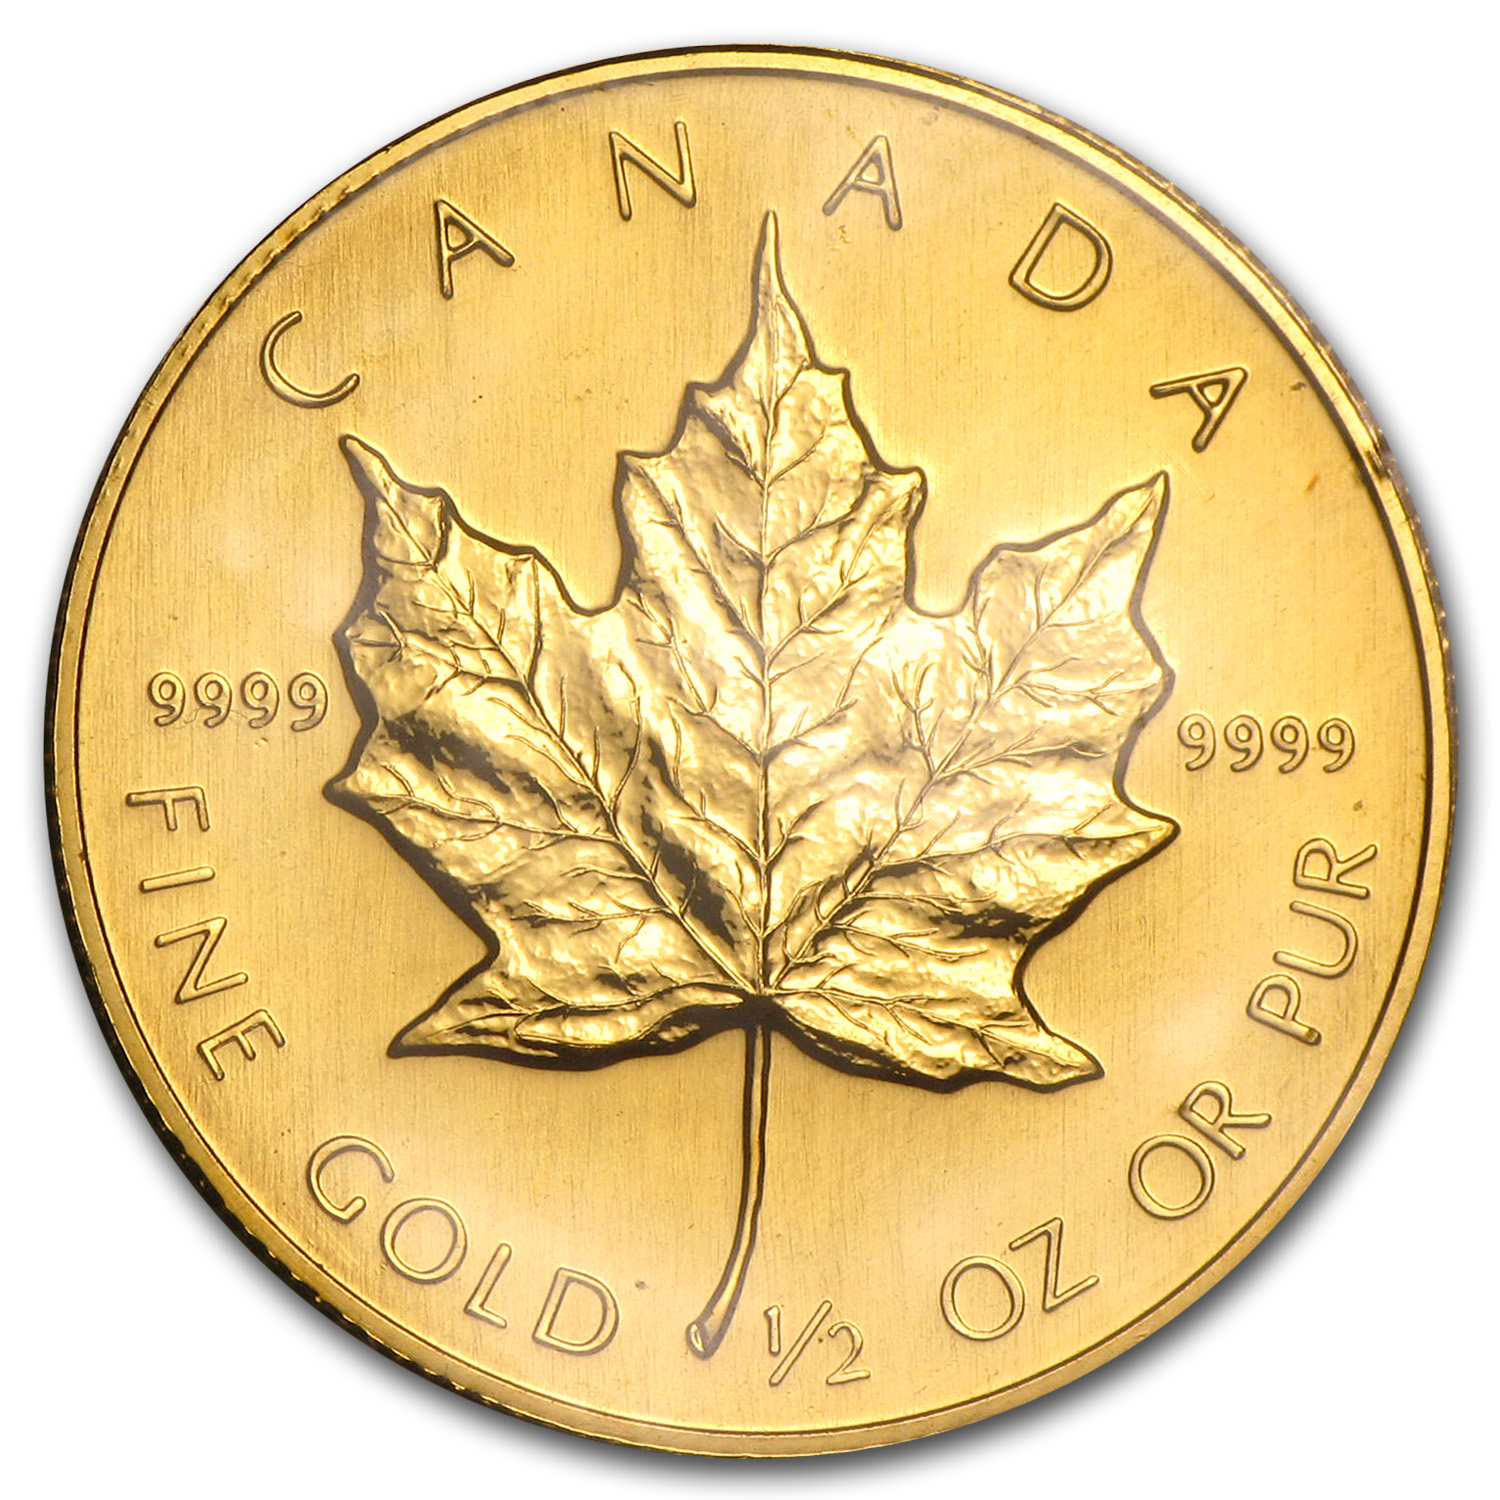 1989 Canada 1/2 oz Gold Maple Leaf BU